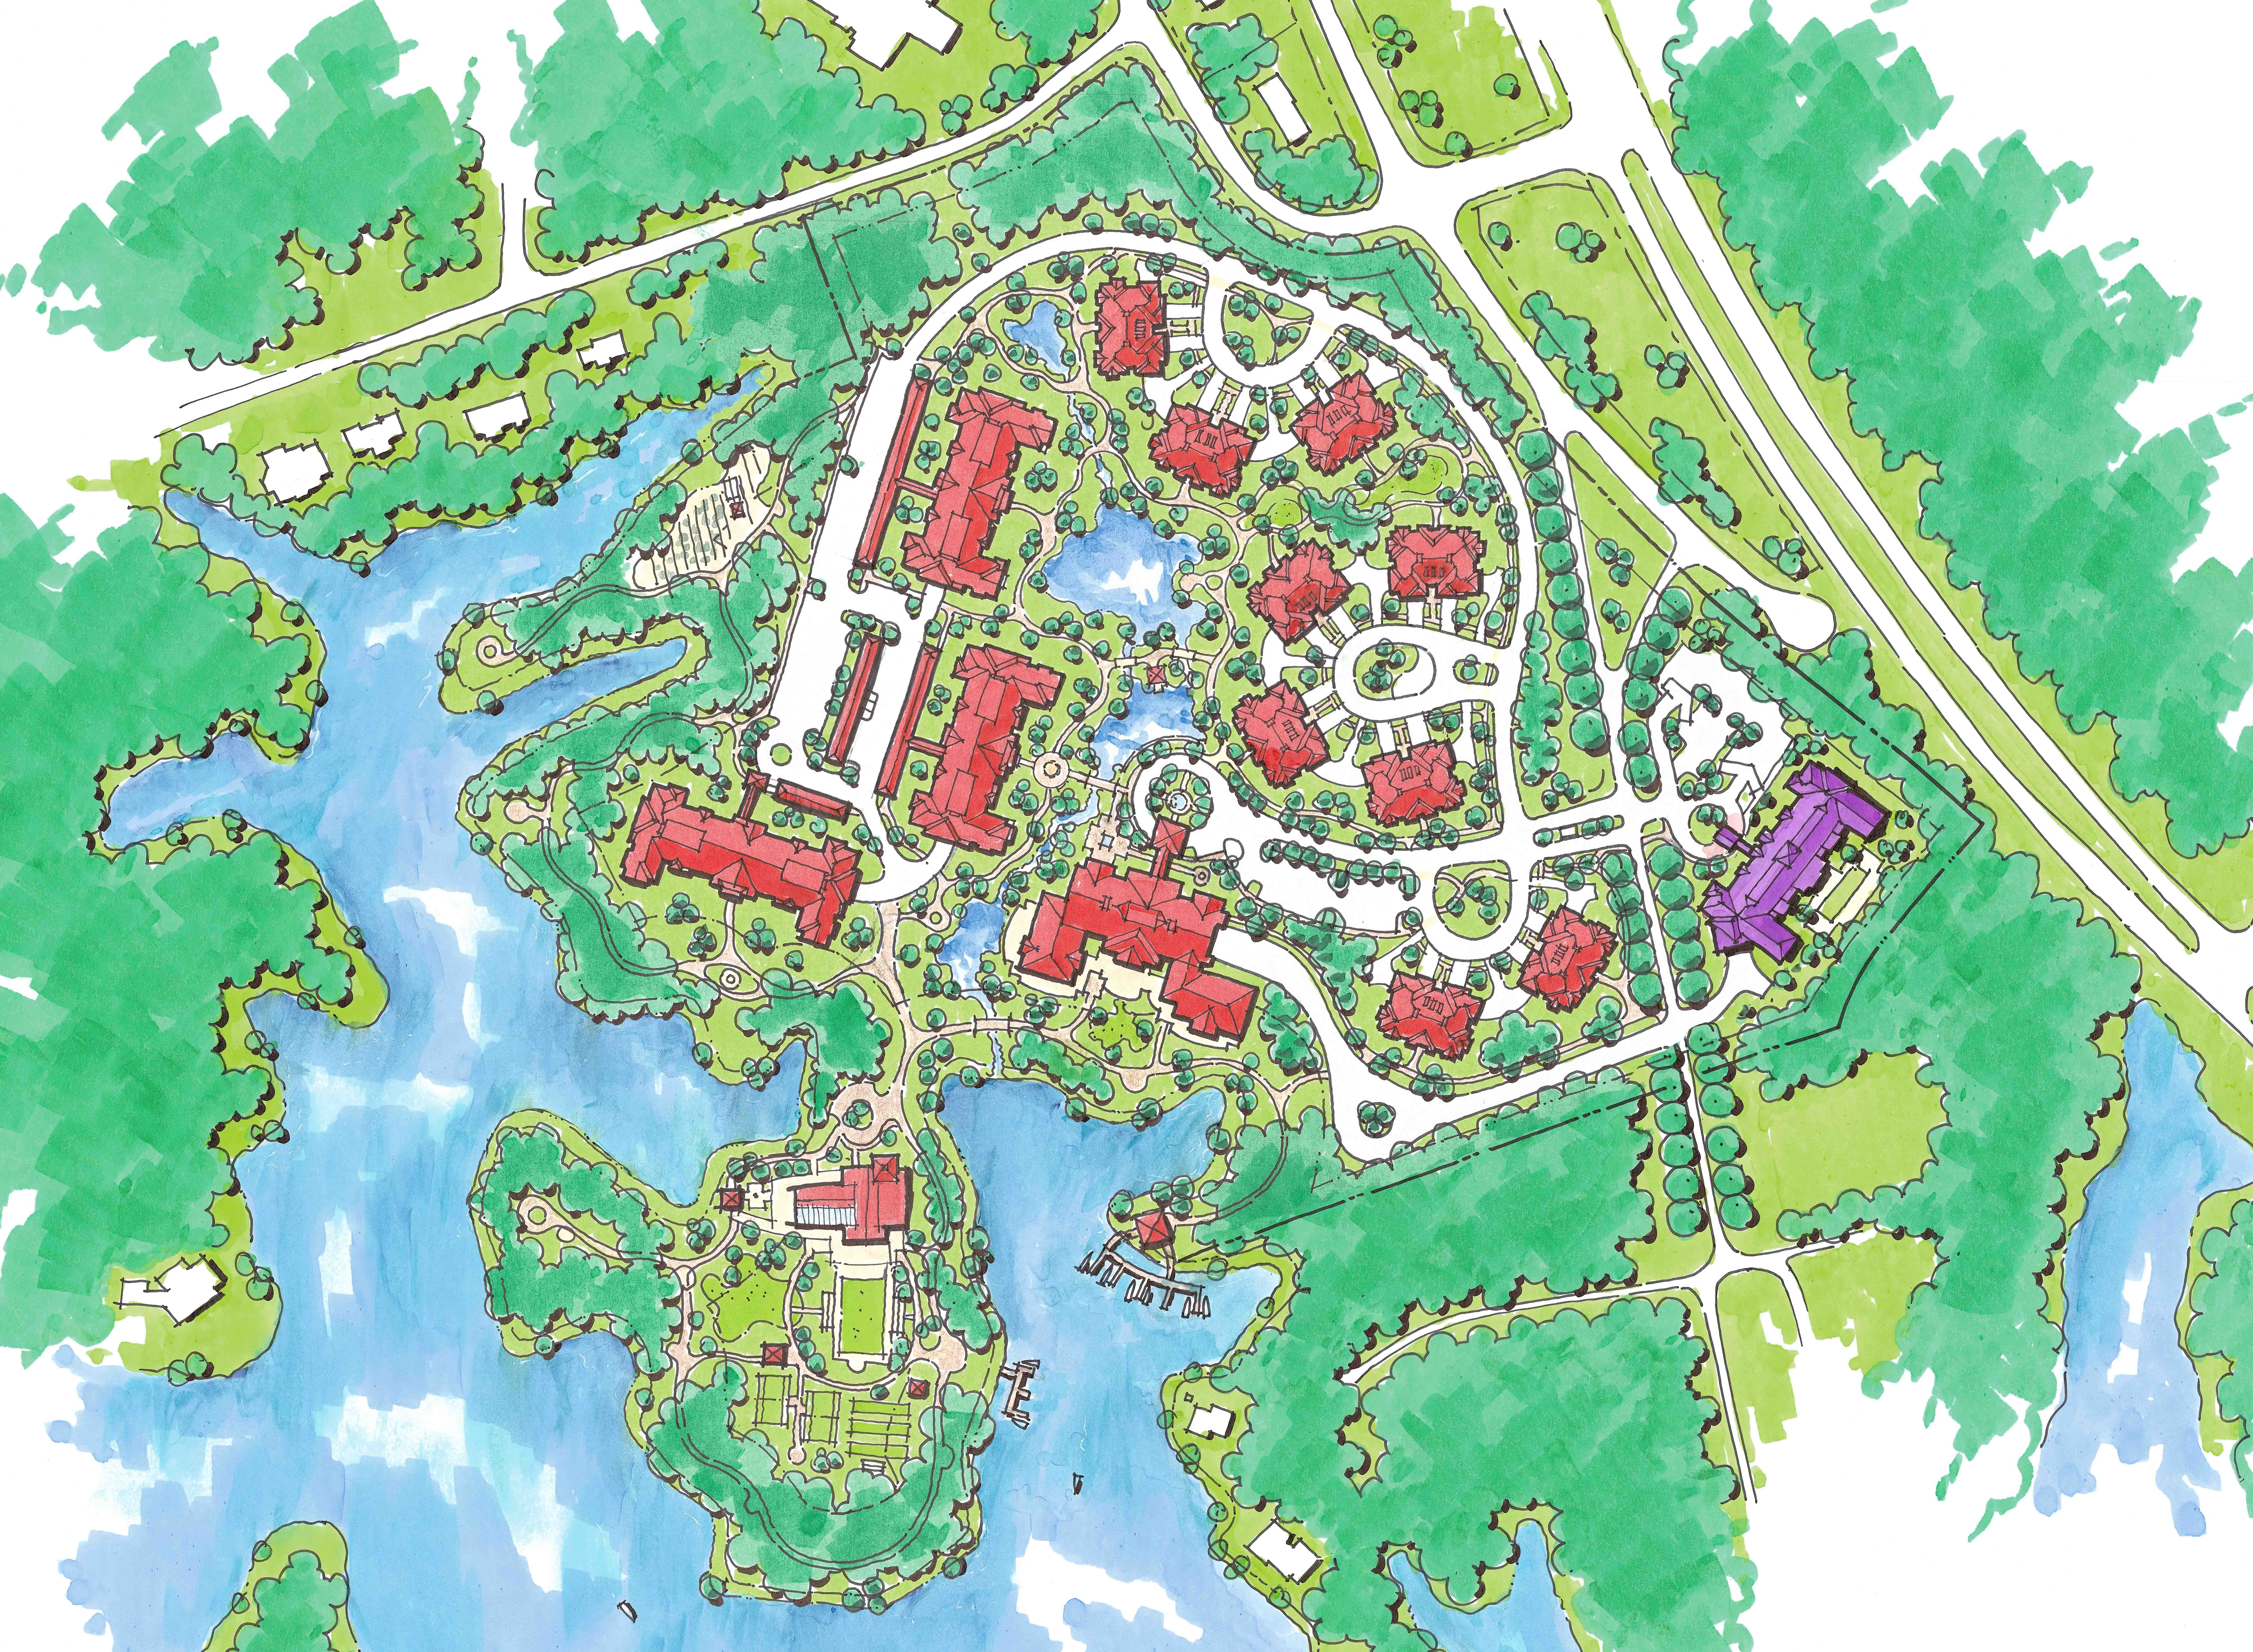 Senior Living, Landscape Architect, THW, THW Atlanta, Top Land Planning, Best Landscape Architects, Landscape Design, Mixed Use Development, Master Planning